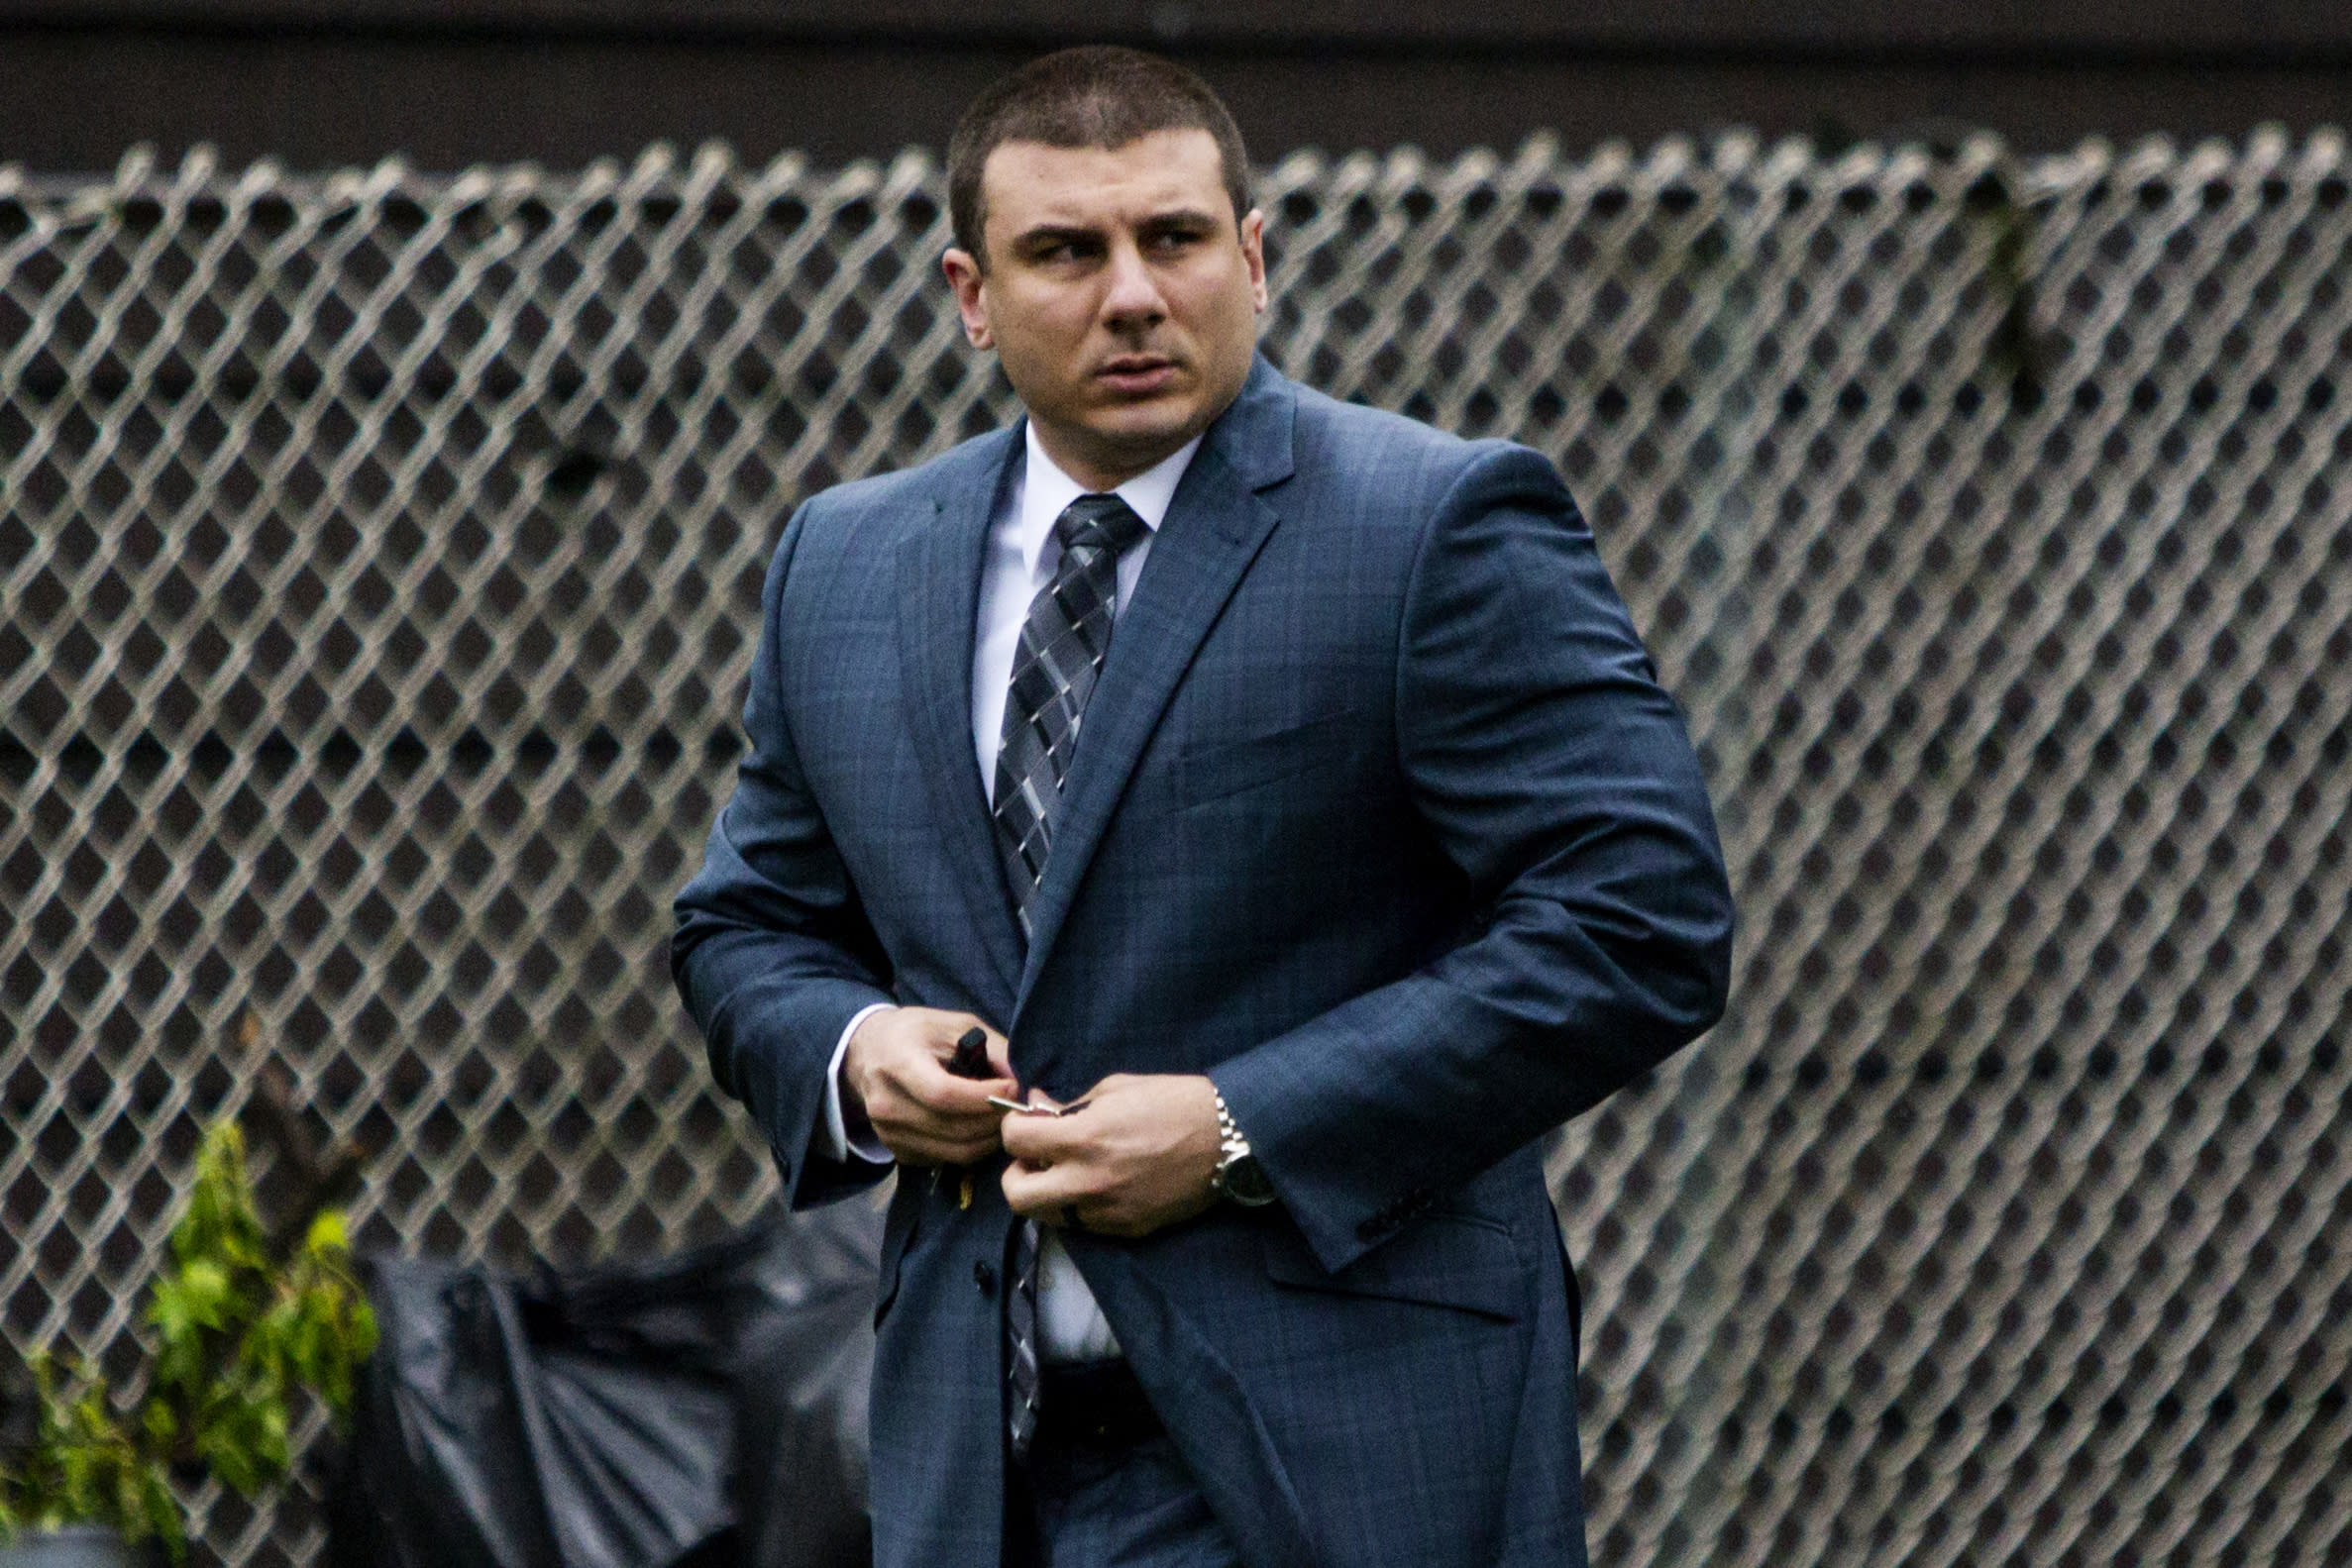 The NYPD Officer Involved In Eric Garner's Death Has Been Fired